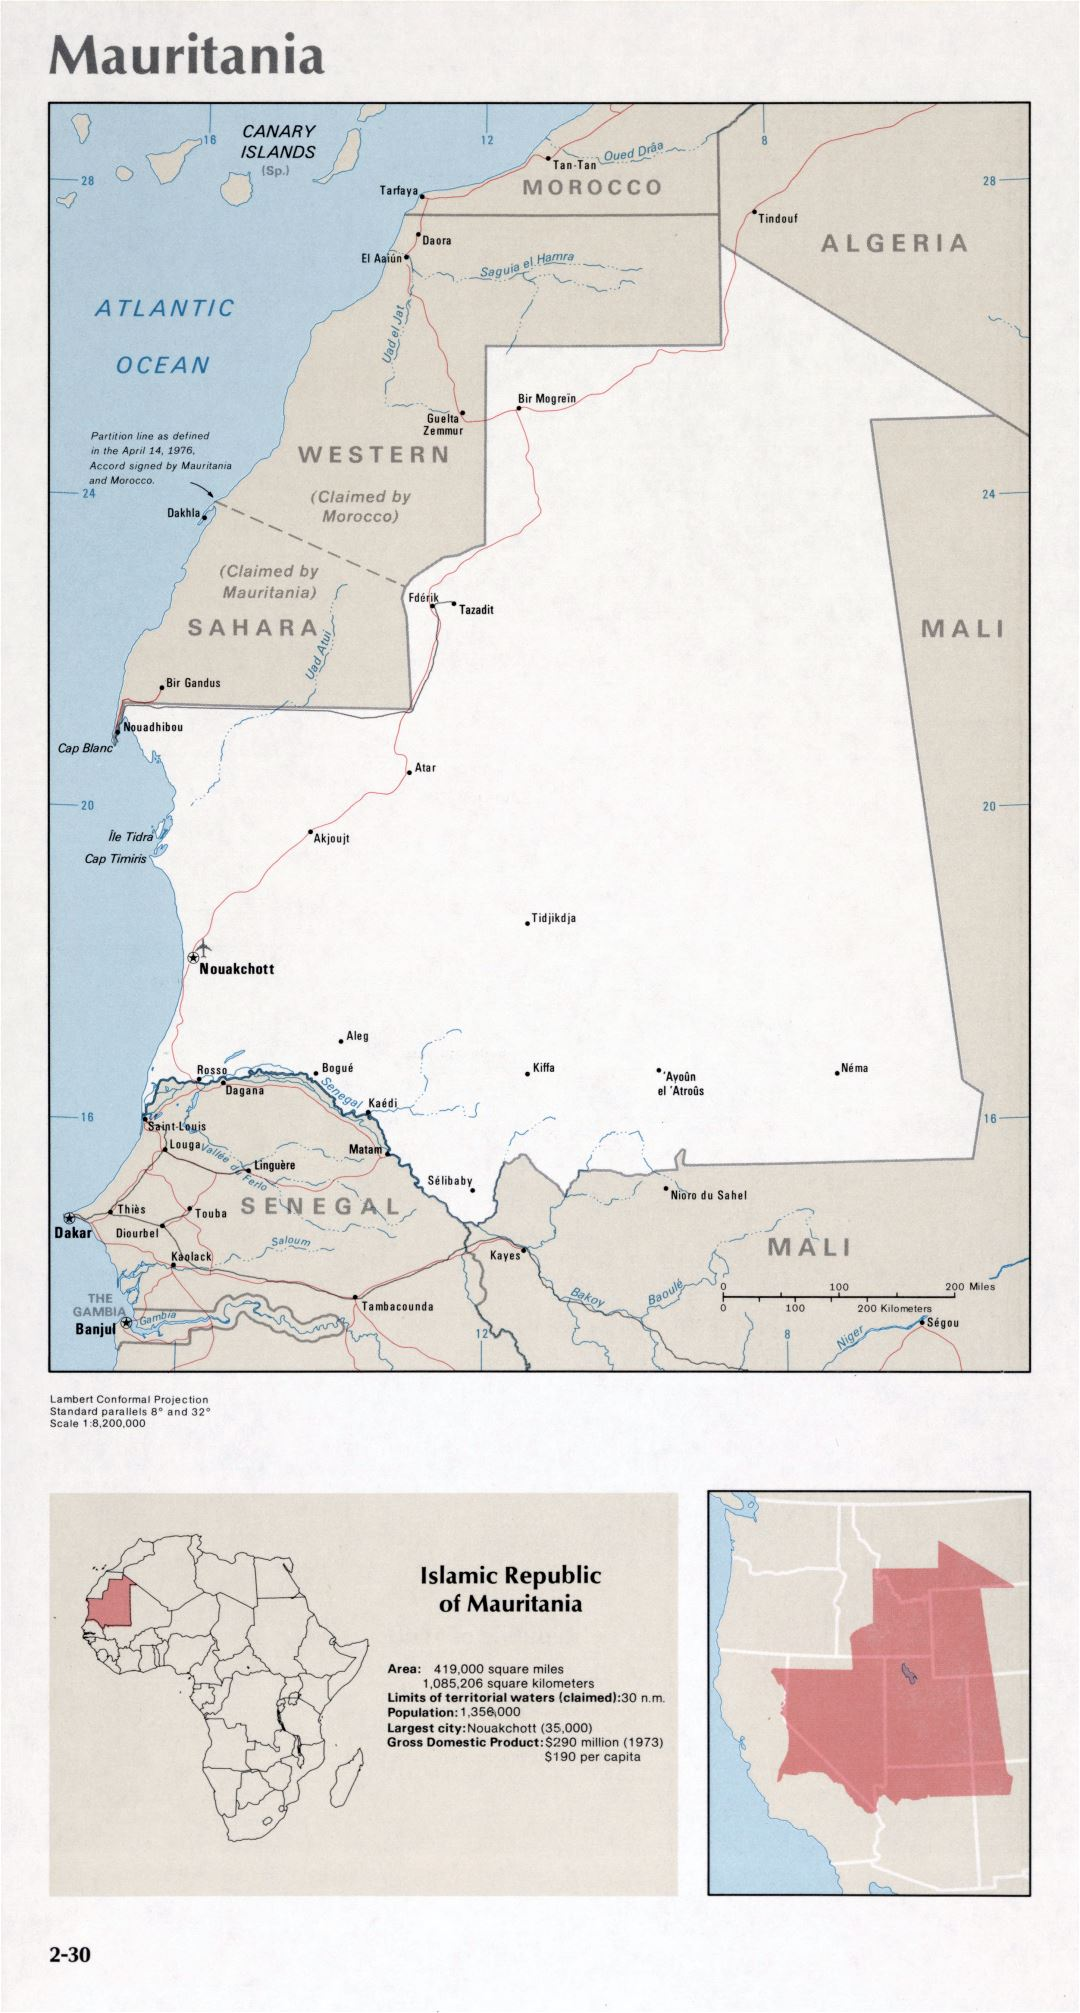 Map of Mauritania (2-30)